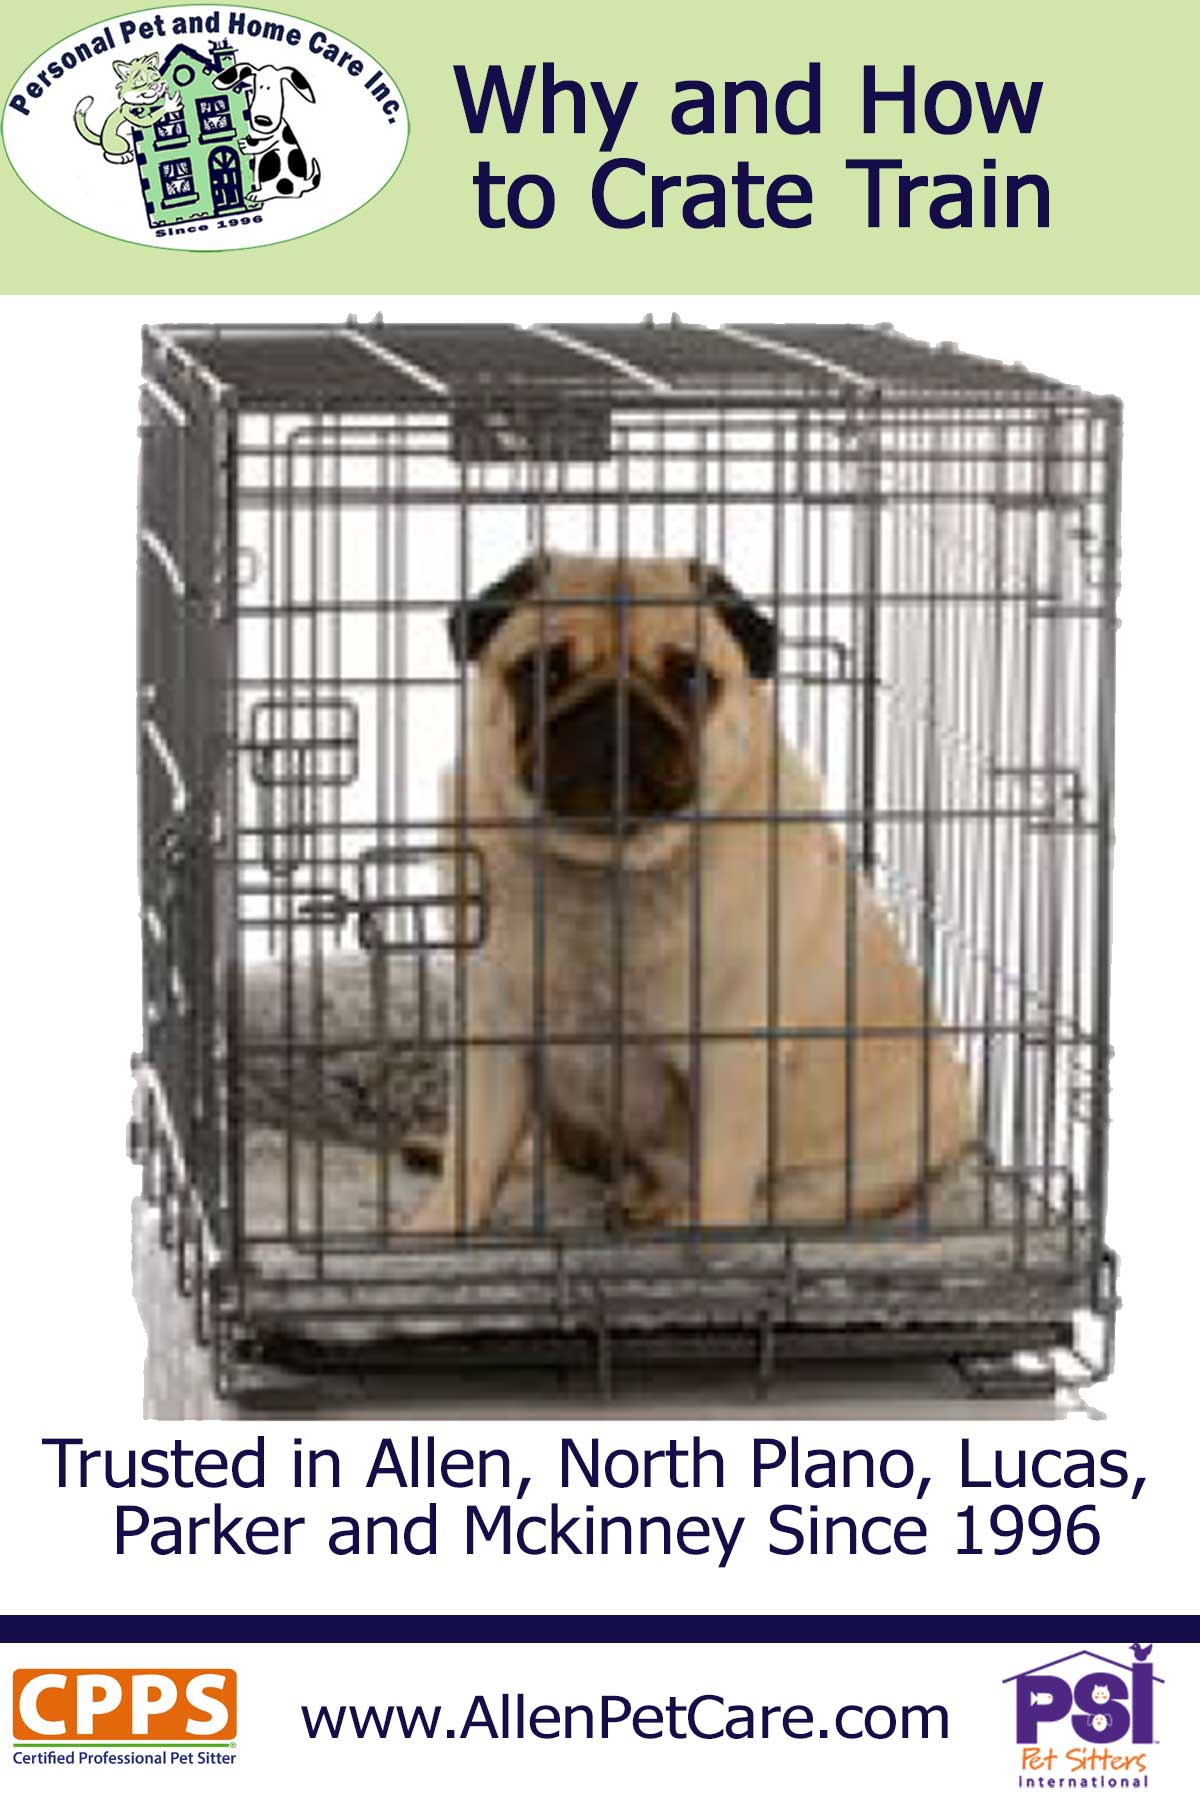 how to crate train your dog and other advice from Personal Pet and Home Care at Allenpetcare.com